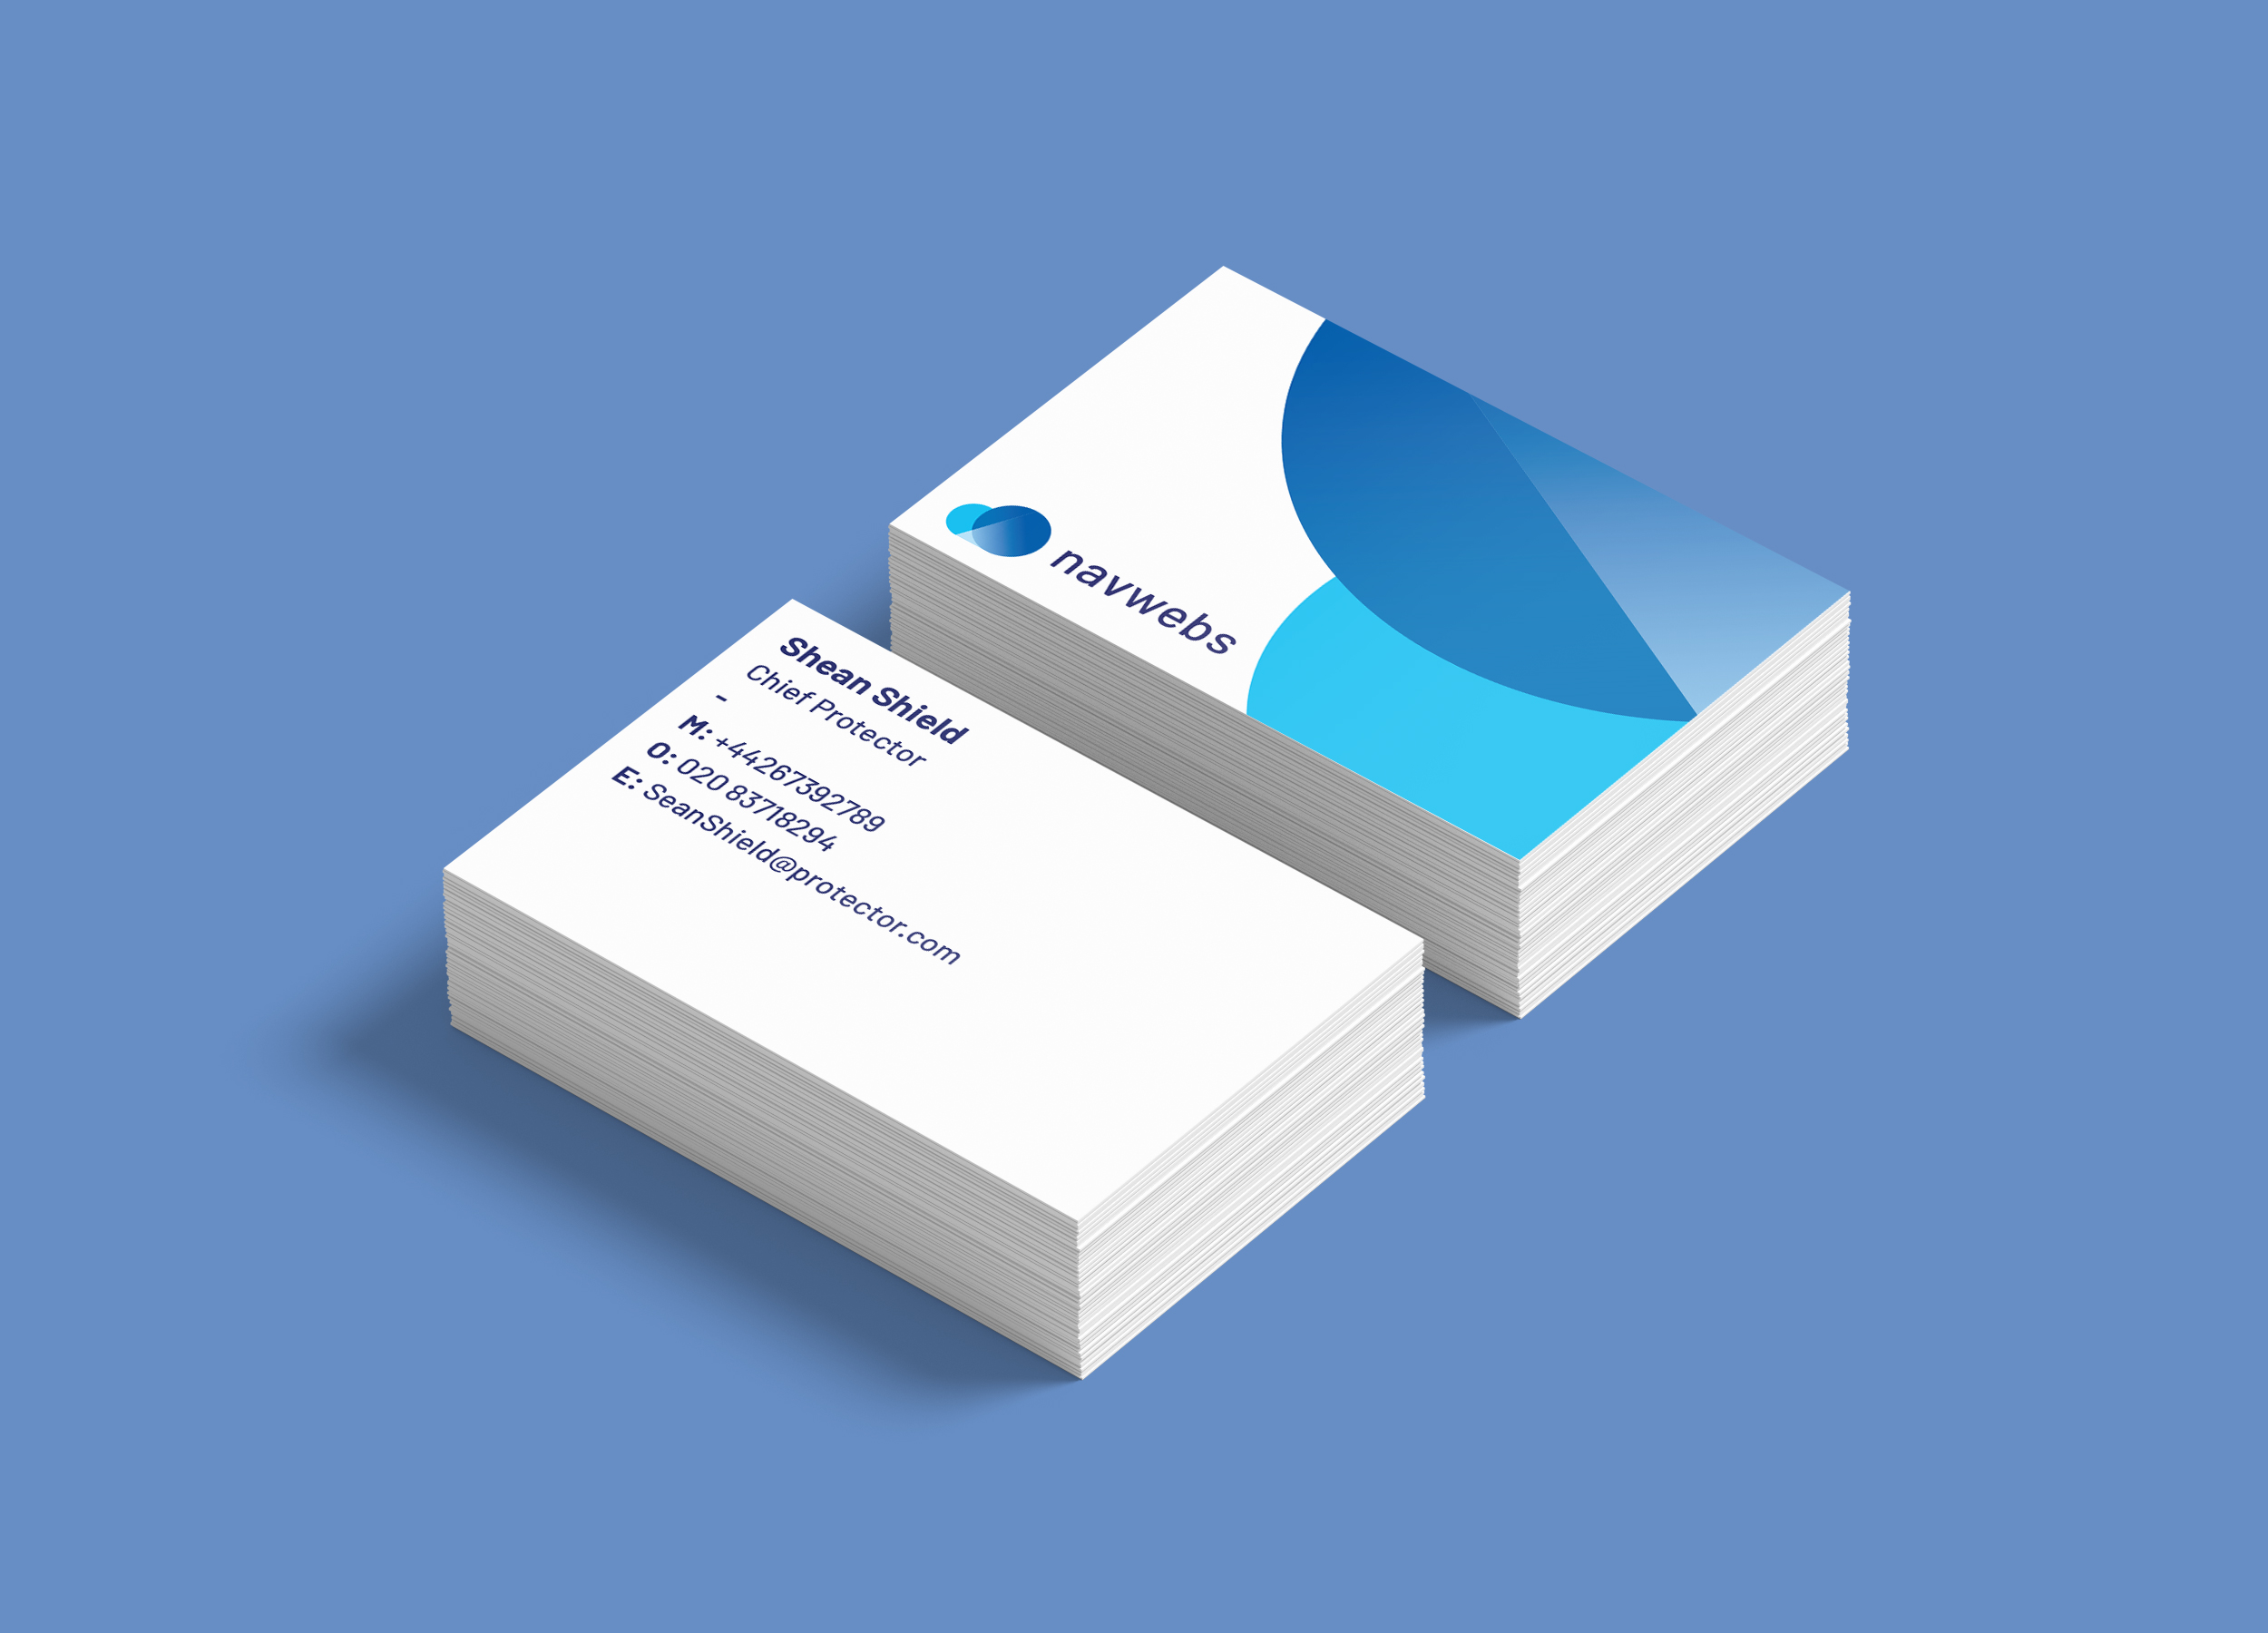 Navwebs-BusinessCards-Mockup-01 copy.jpg